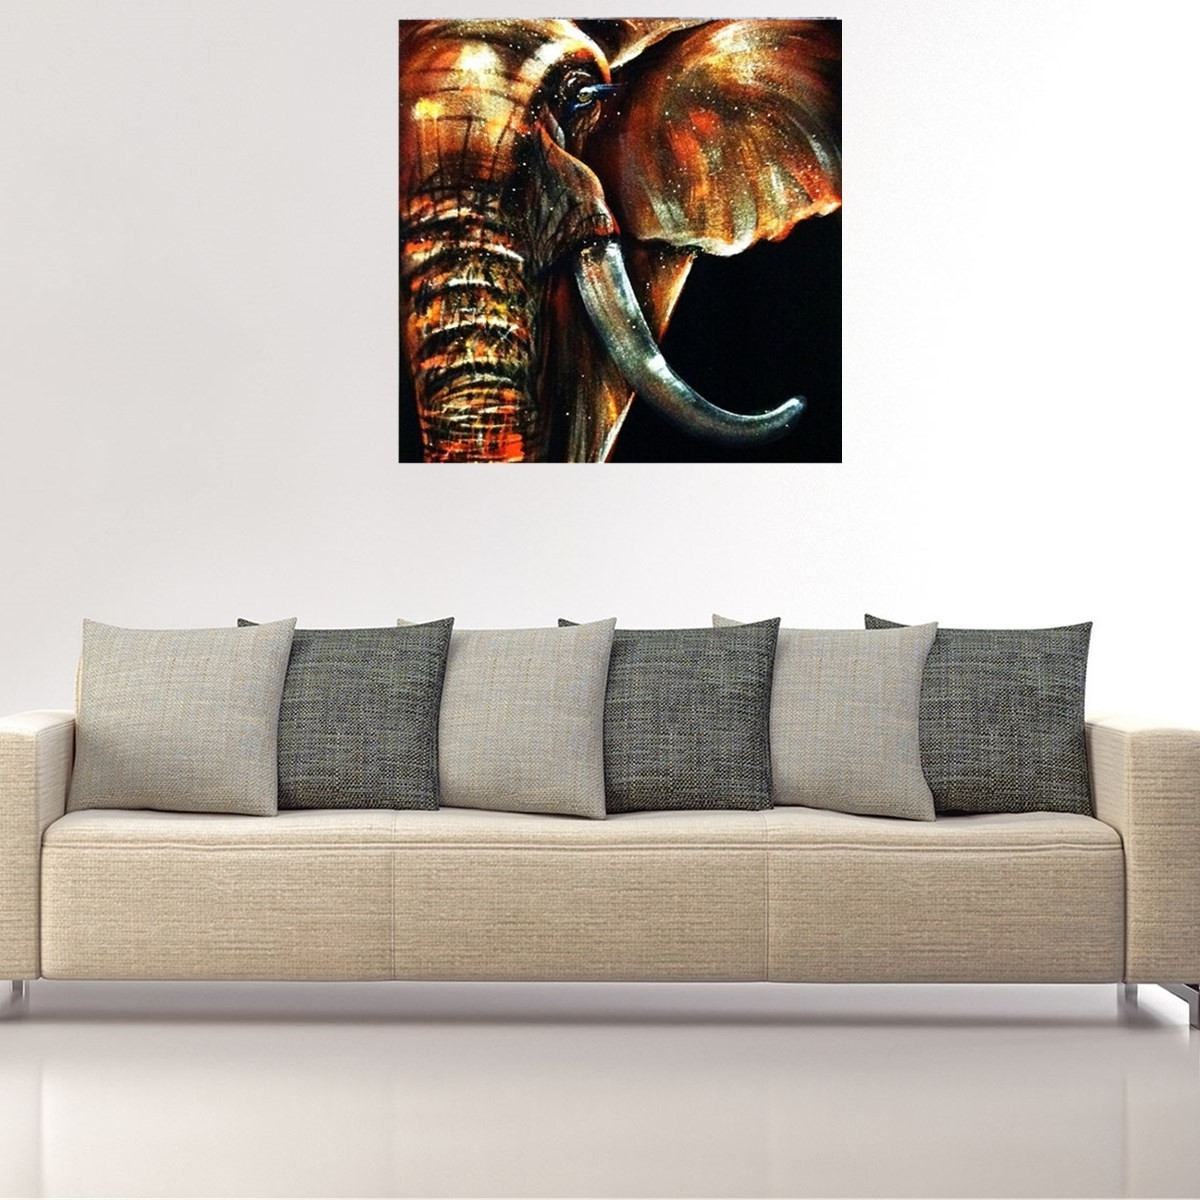 50X50Cm Modern Abstract Huge Elephant Wall Art Decor Oil Painting Regarding Fashionable Abstract Elephant Wall Art (View 3 of 15)